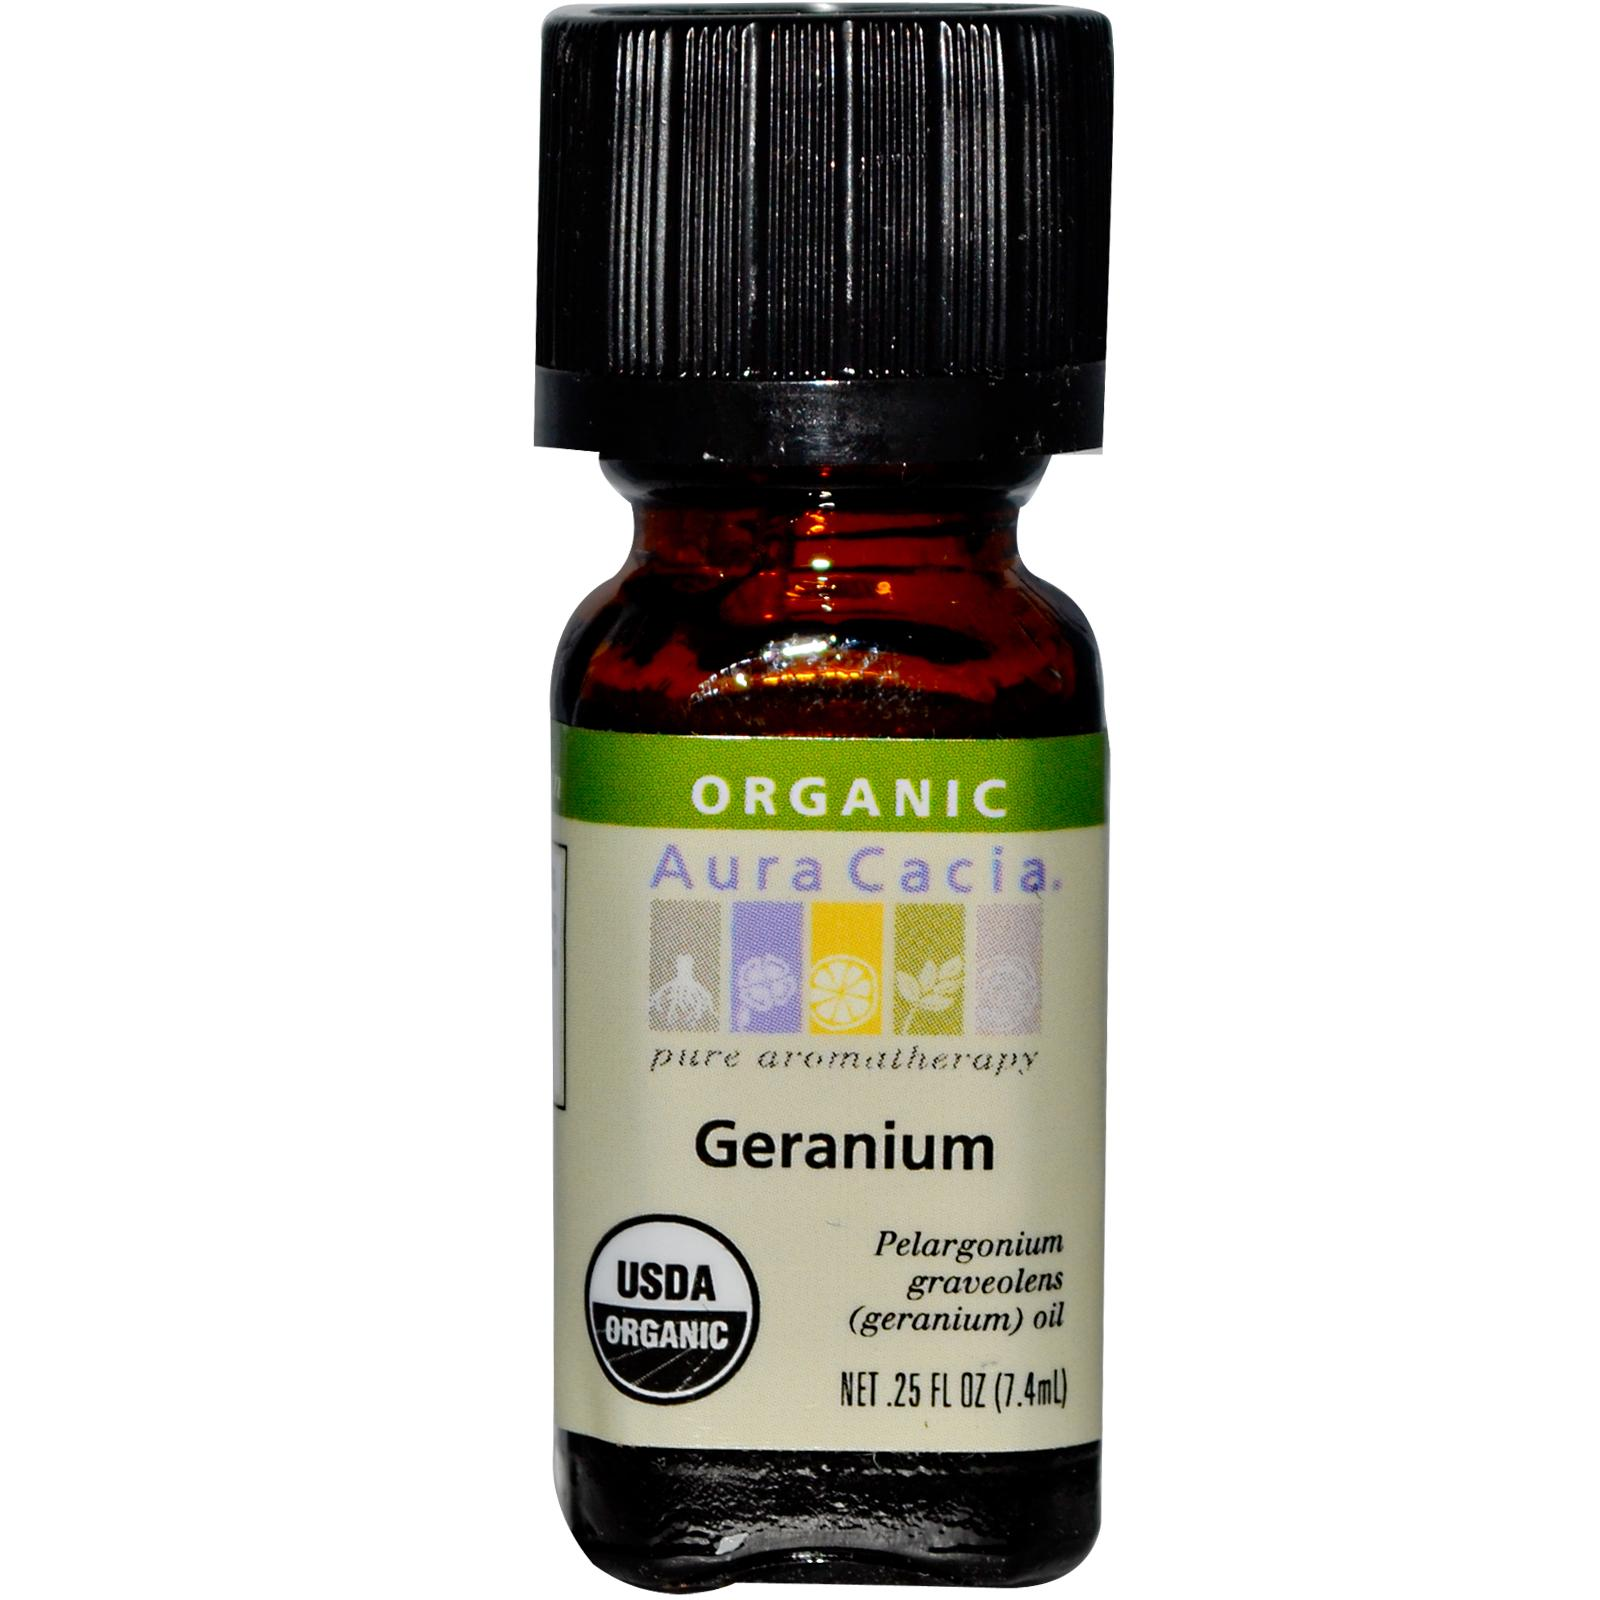 Organic Essential Oil - Aura Cacia - Geranium aromatherapy, essential oil, organic, all natural, aura cacia, certified, doTerra,  therapeutic grade, pure, geranium,